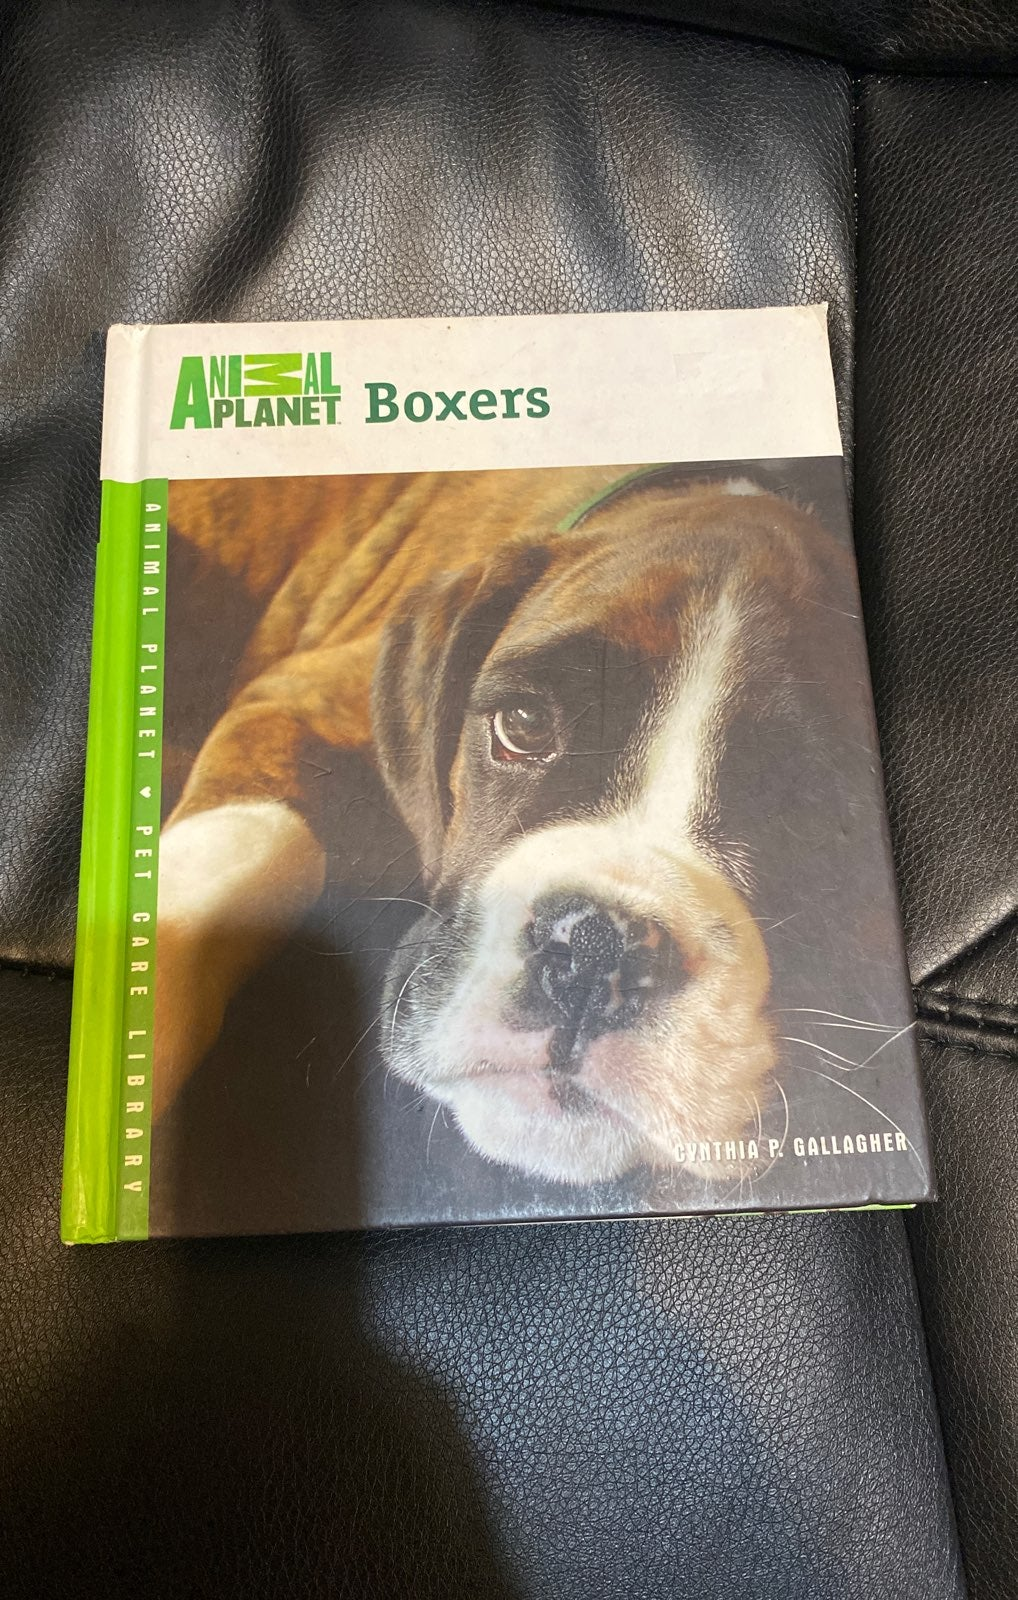 Animal planet Boxers book